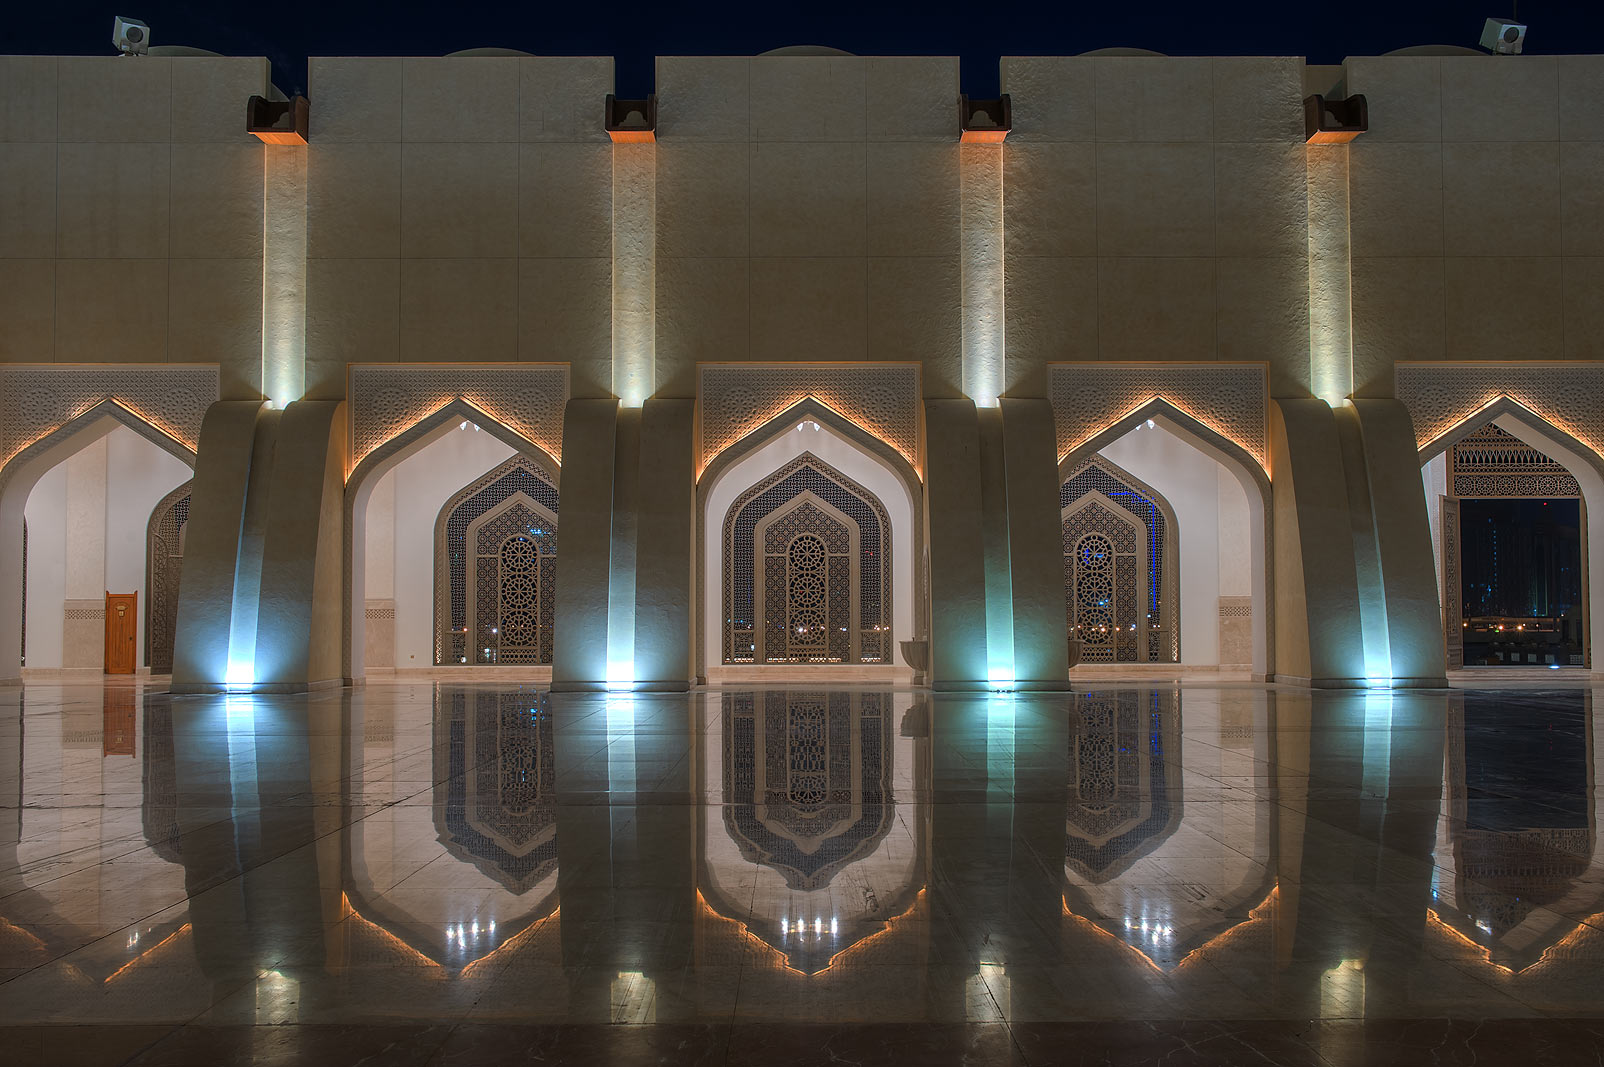 Gates of a courtyard of State Mosque (Sheikh...Ibn Abdul Wahhab Mosque). Doha, Qatar